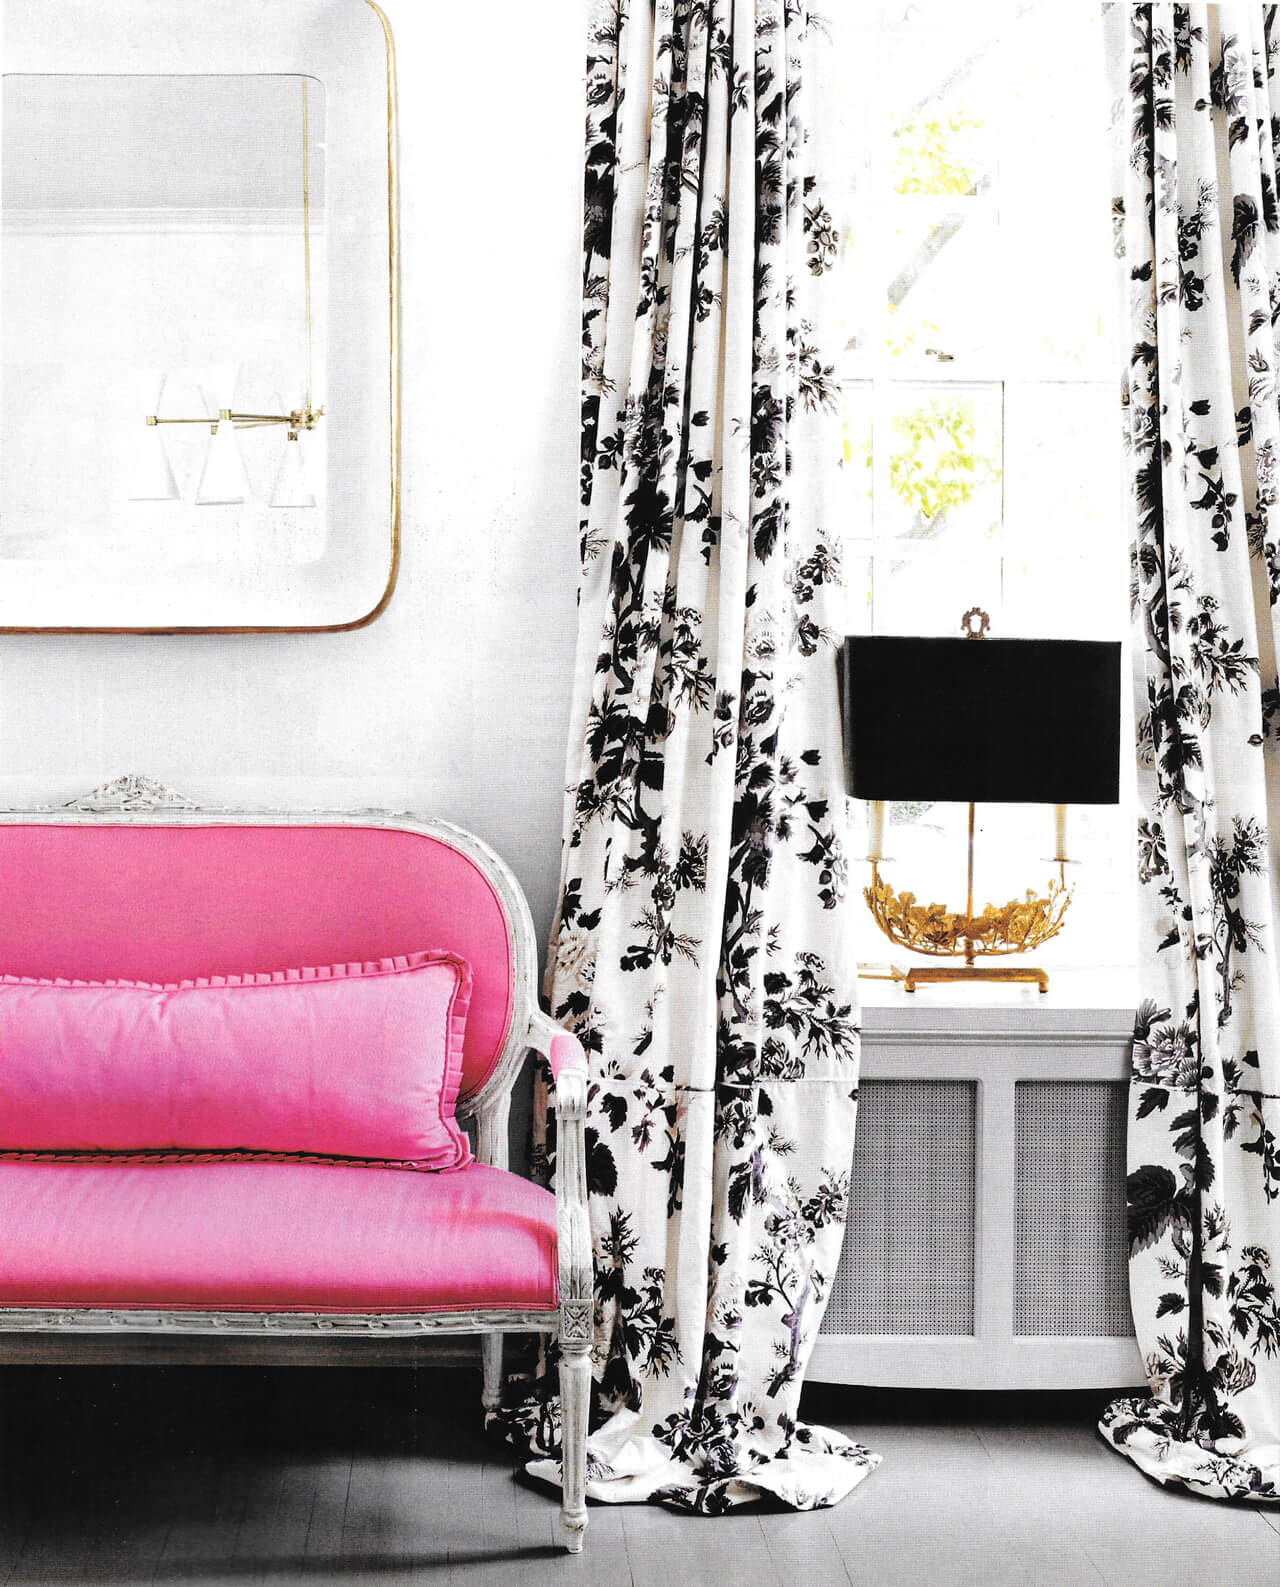 Pink Perfection: Suellen Gregory for House Beautiful - York Avenue